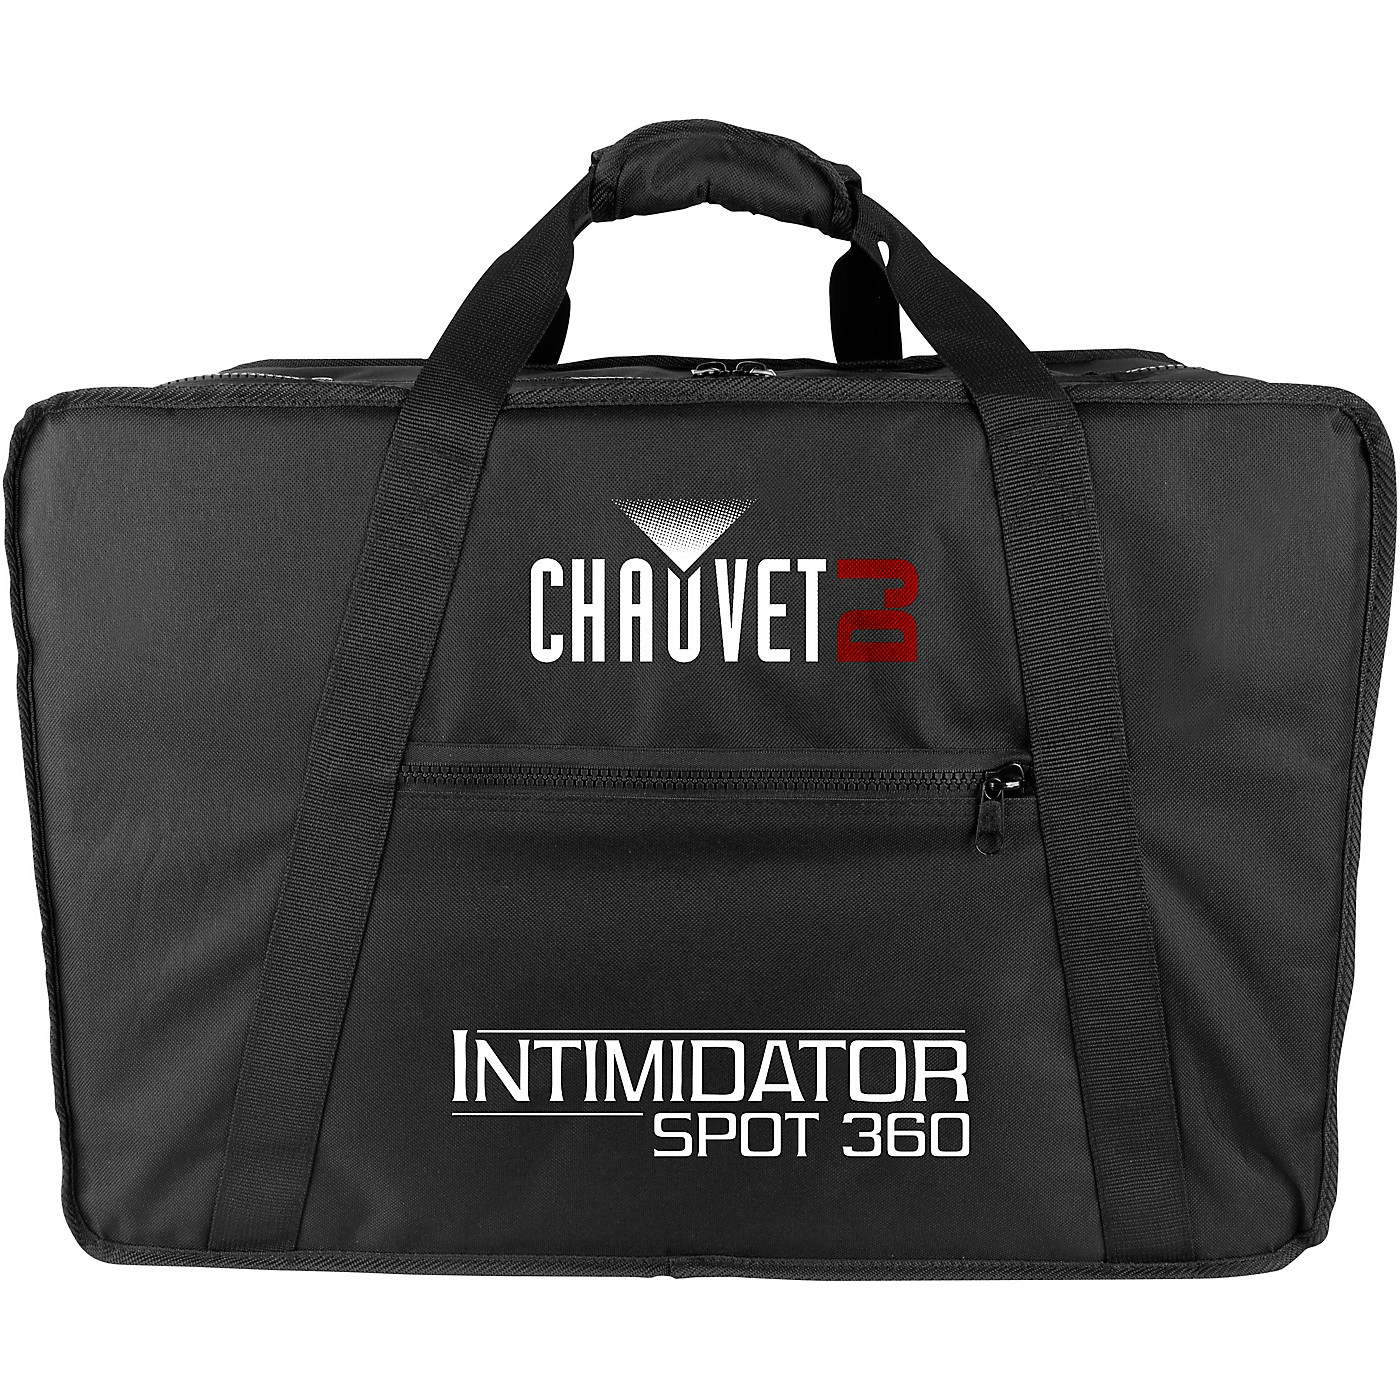 CHAUVET DJ CHS-360 Case for Intimidator Spot 360 thumbnail